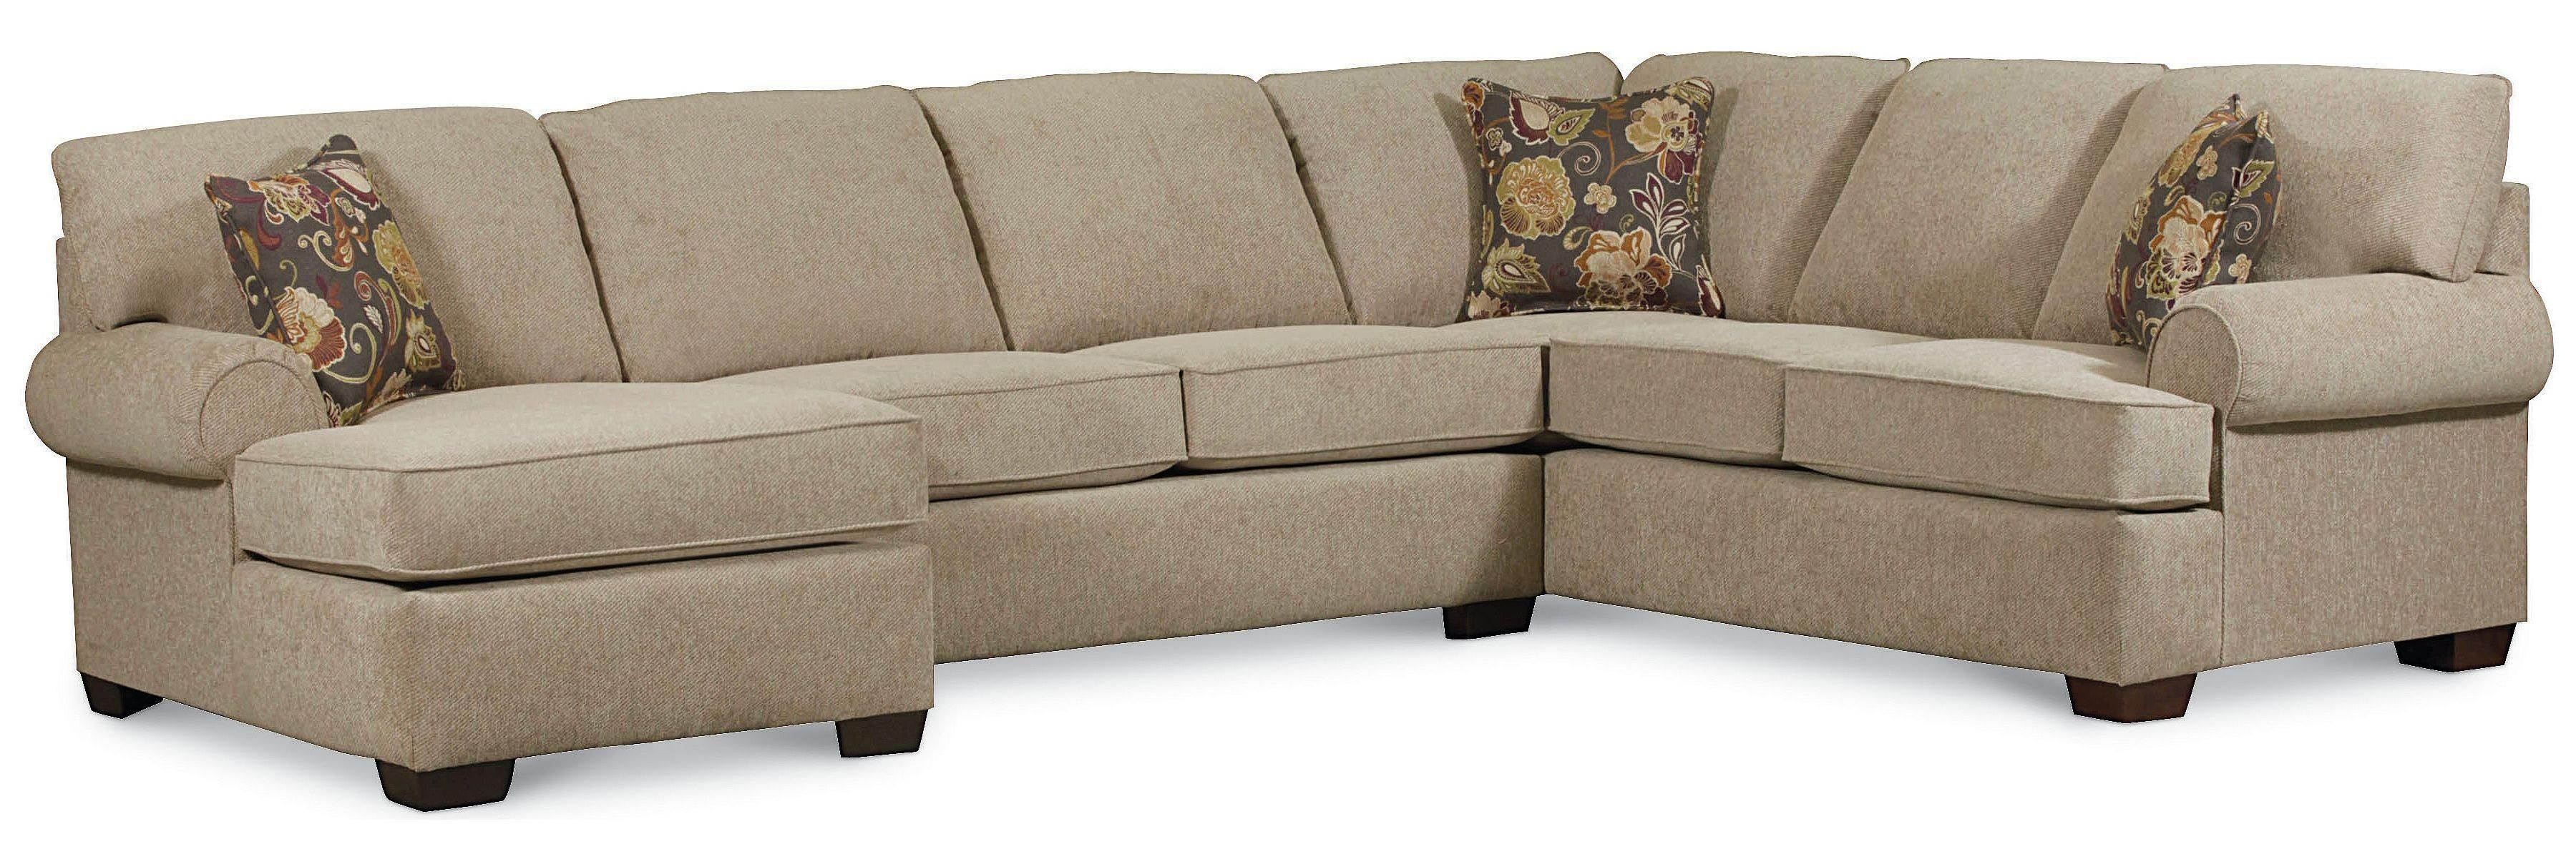 Exceptionnel Vivian Transitional 3 Piece Sectional Sofa By Lane